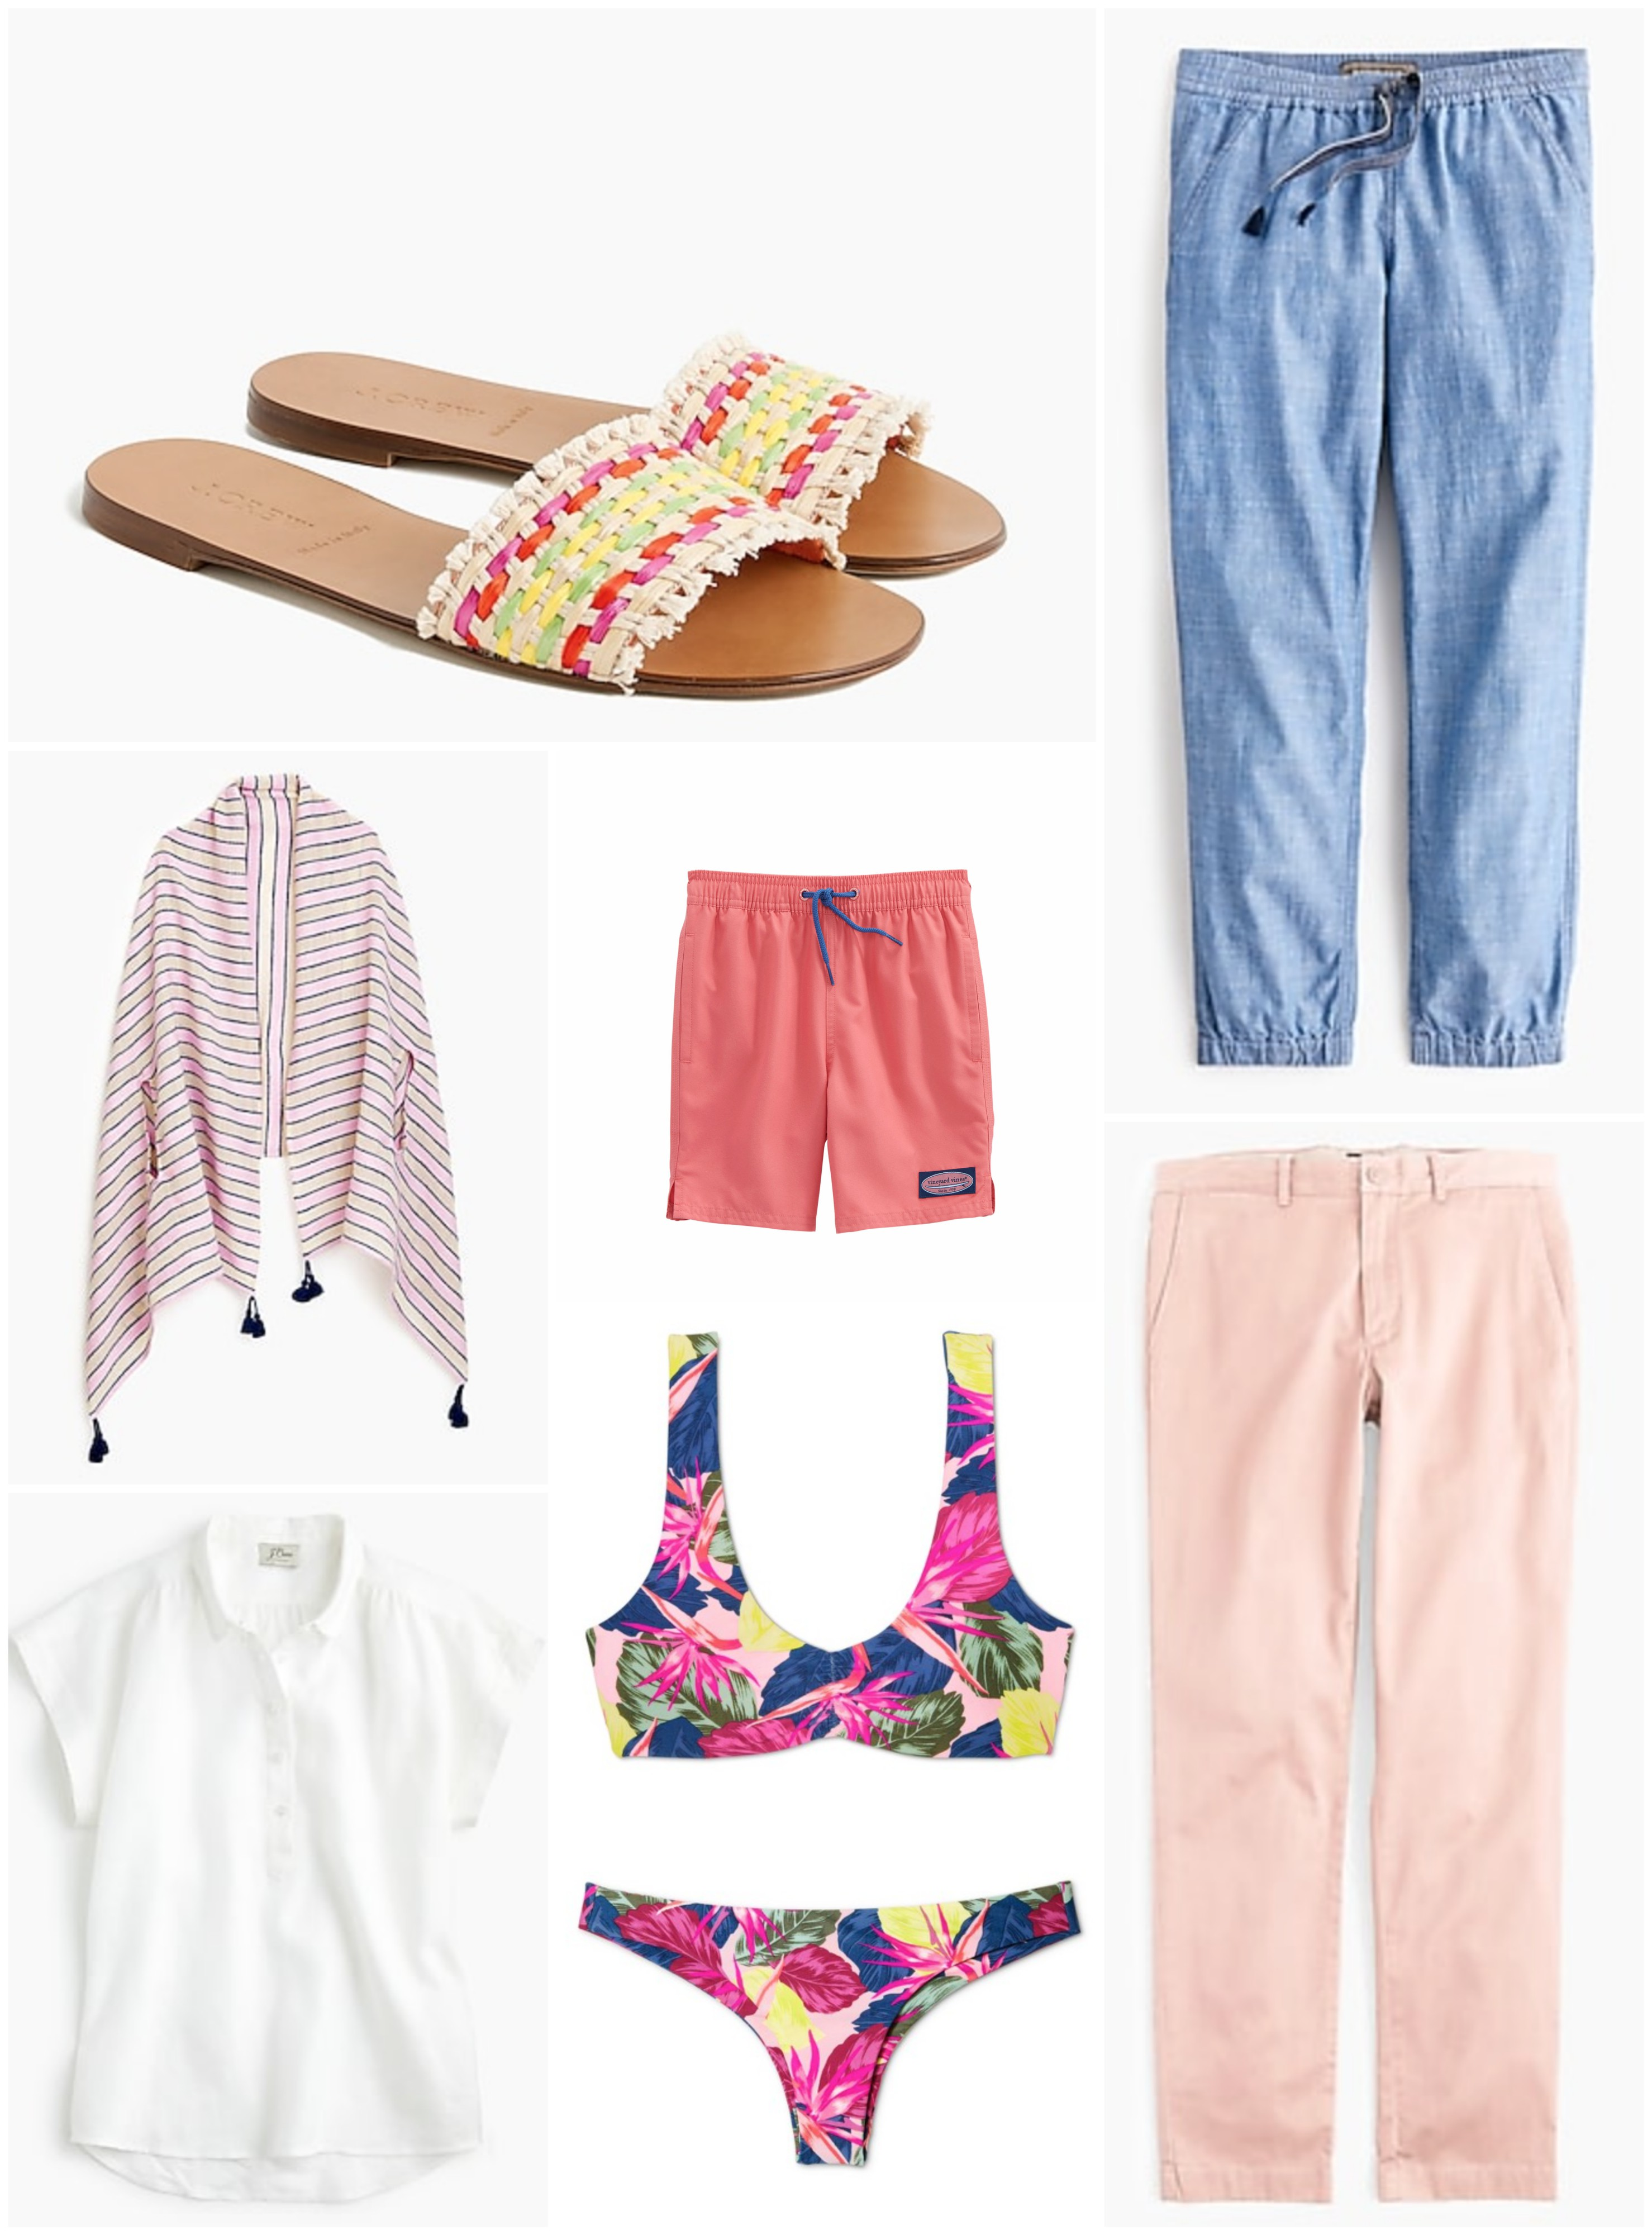 Loving Lately: Summer Style - Communikait by Kait Hanson